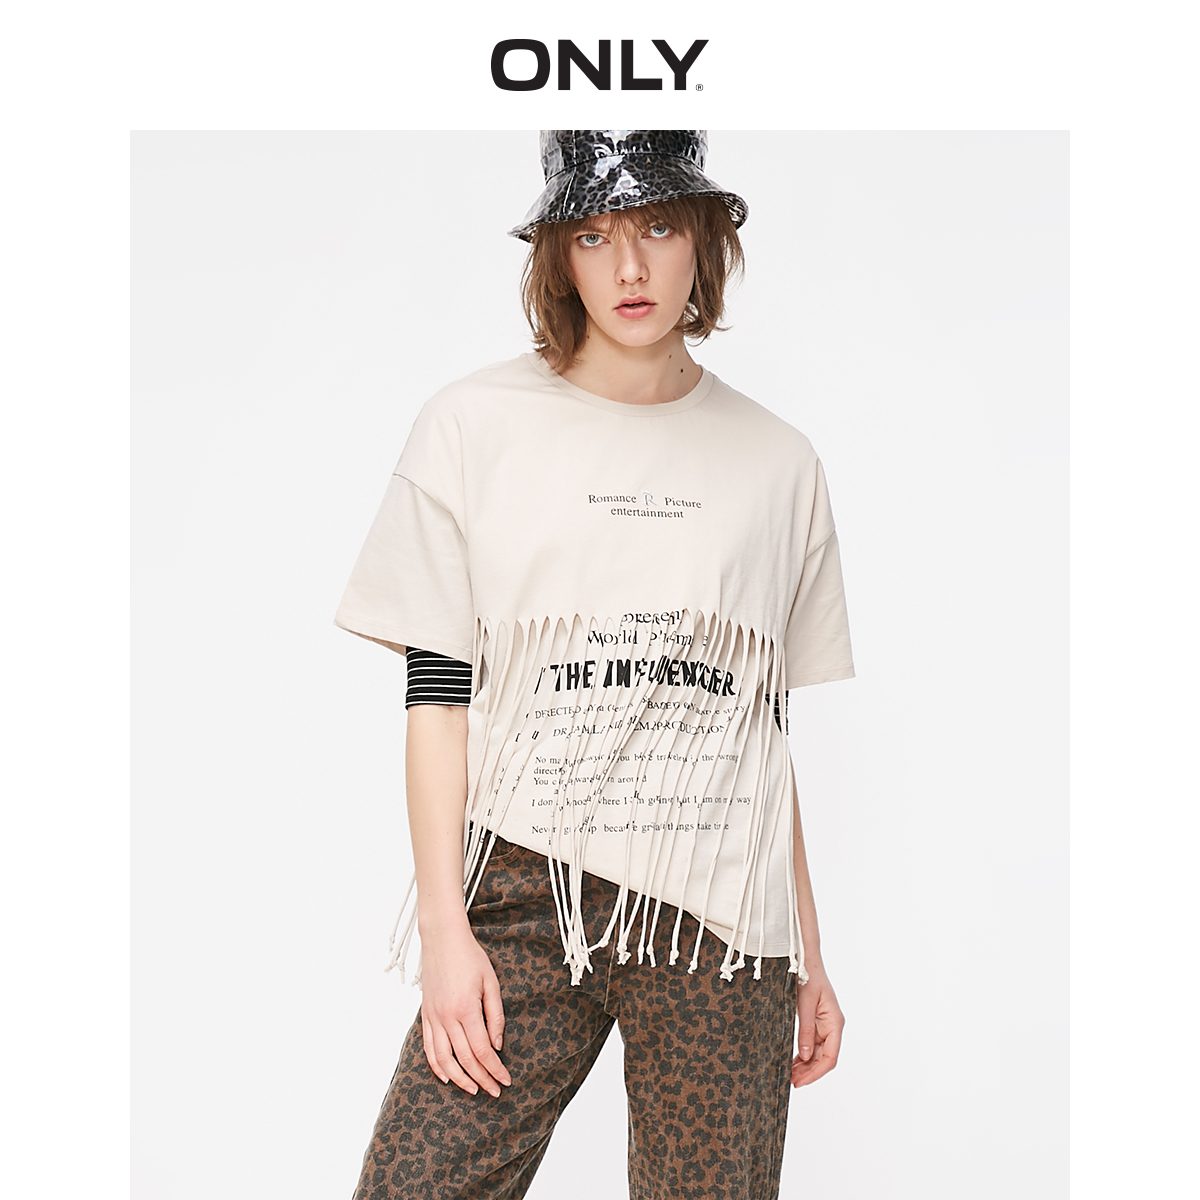 ONLY Women's Loose Fit 100% Cotton Fringed Letter Print Drop-shoulder Elbow Sleeves T-shirt   119201535